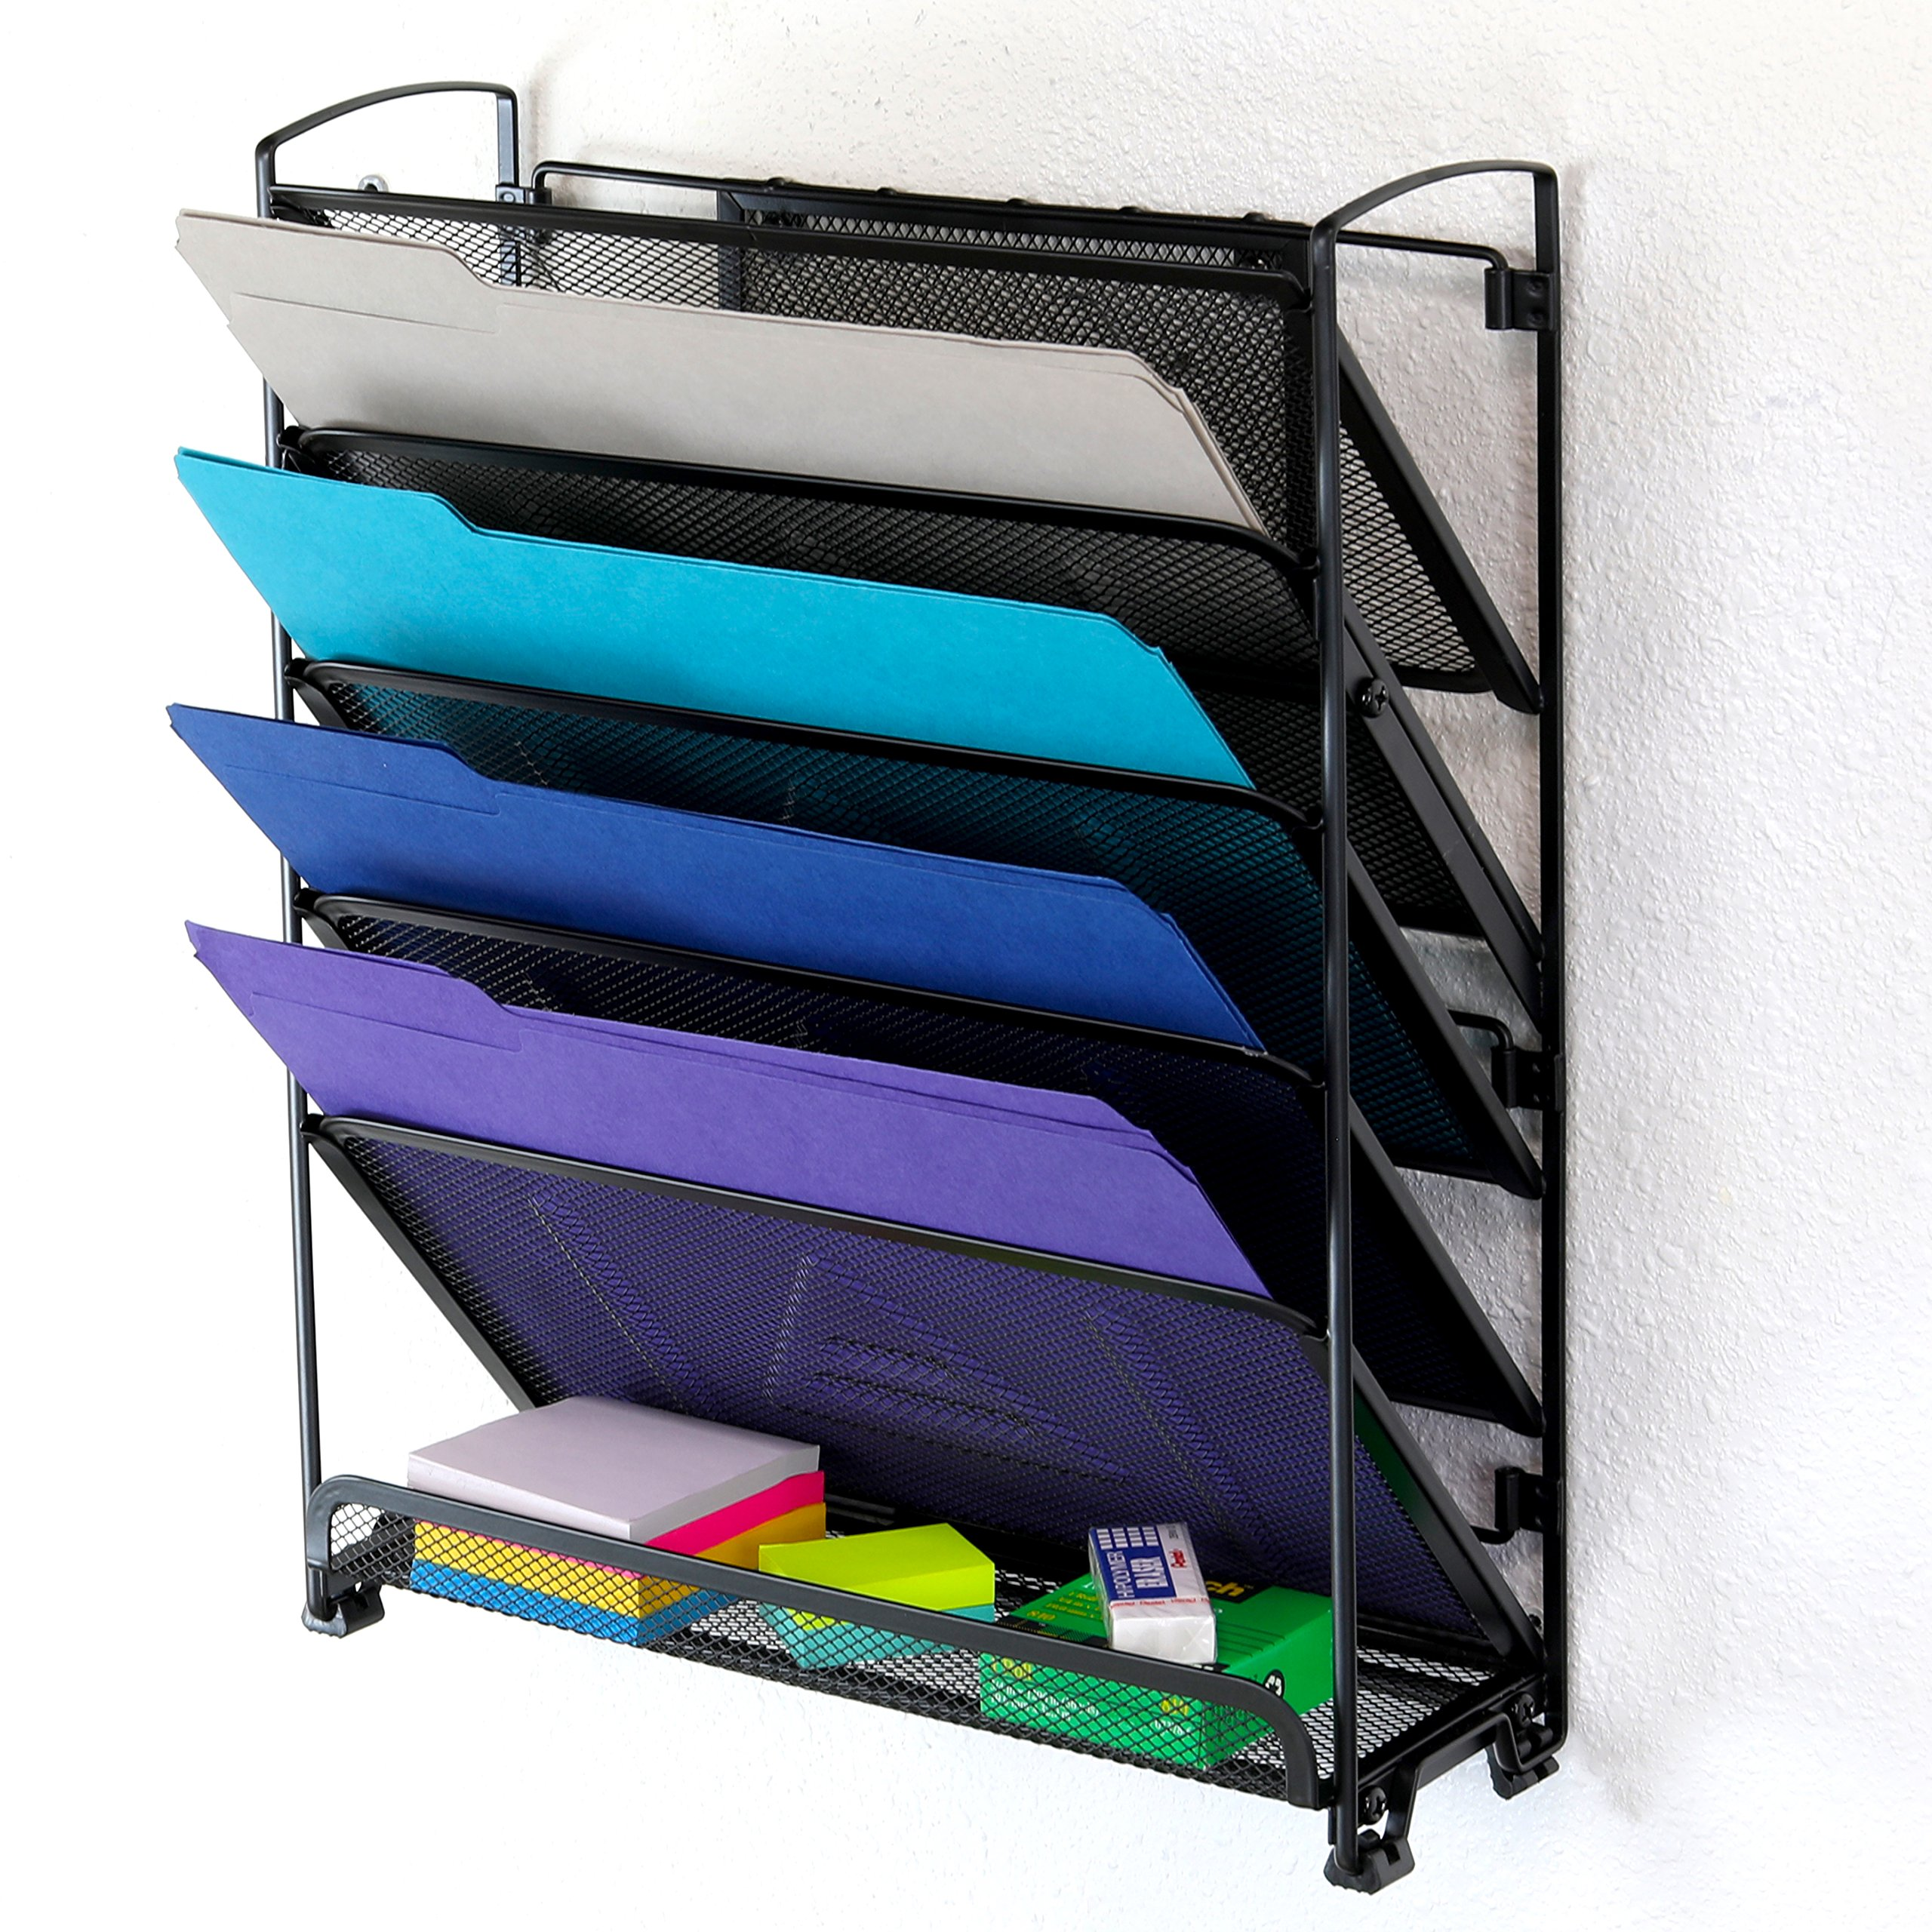 SimpleHouseware 6 Tier Wall Mount Document Letter Tray Organizer, Black by Simple Houseware